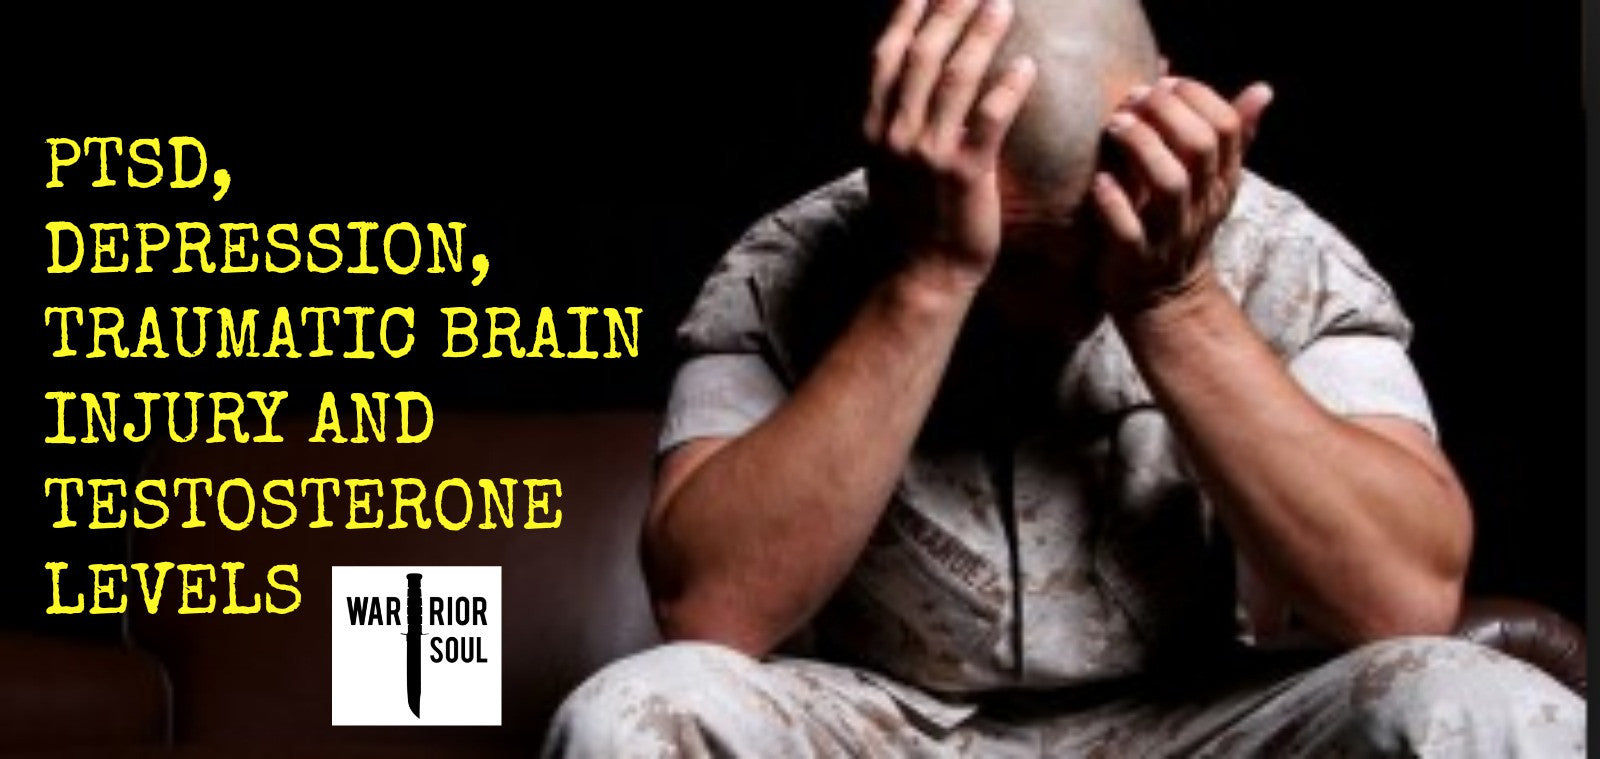 Is Low Testosterone Enhancing the Effects of PTSD and TBI?